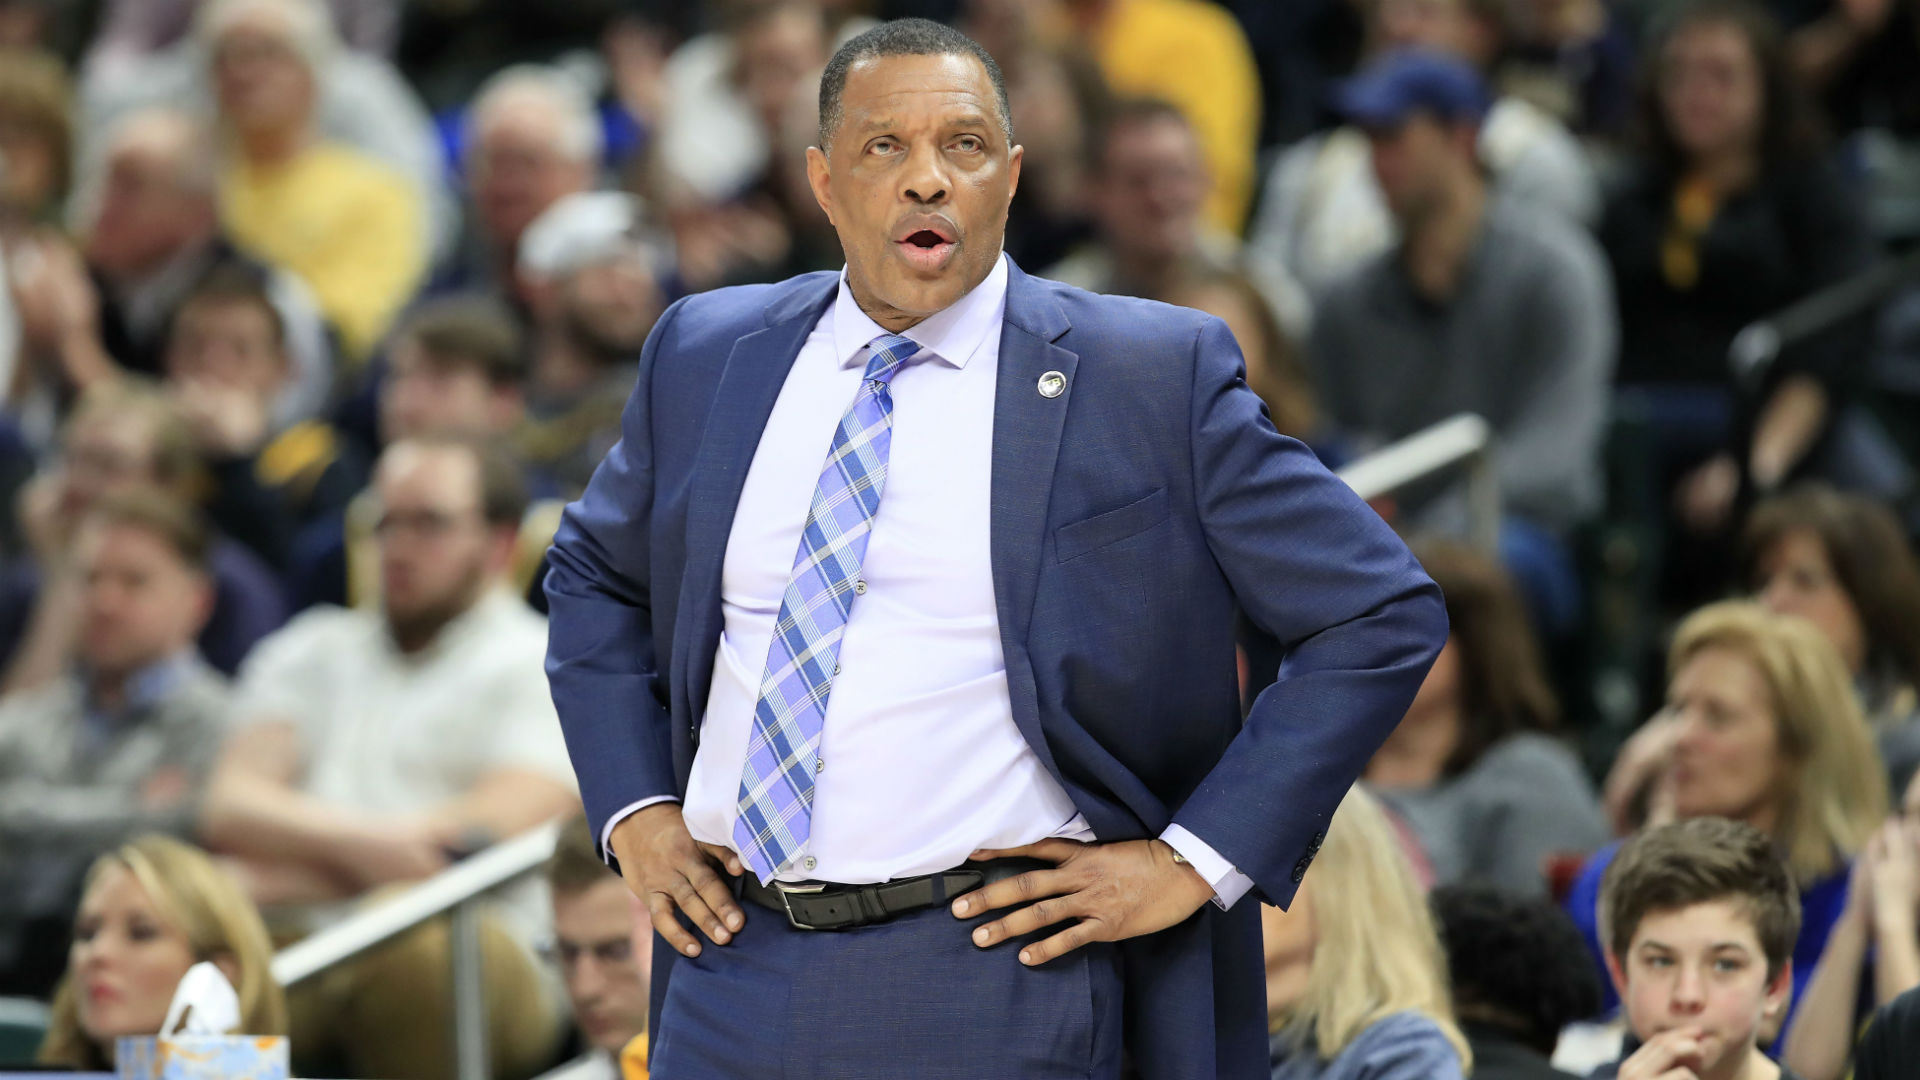 Having reportedly traded Anthony Davis ahead of Zion Williamson's looming arrival, the Pelicans have picked up coach Alvin Gentry's option.